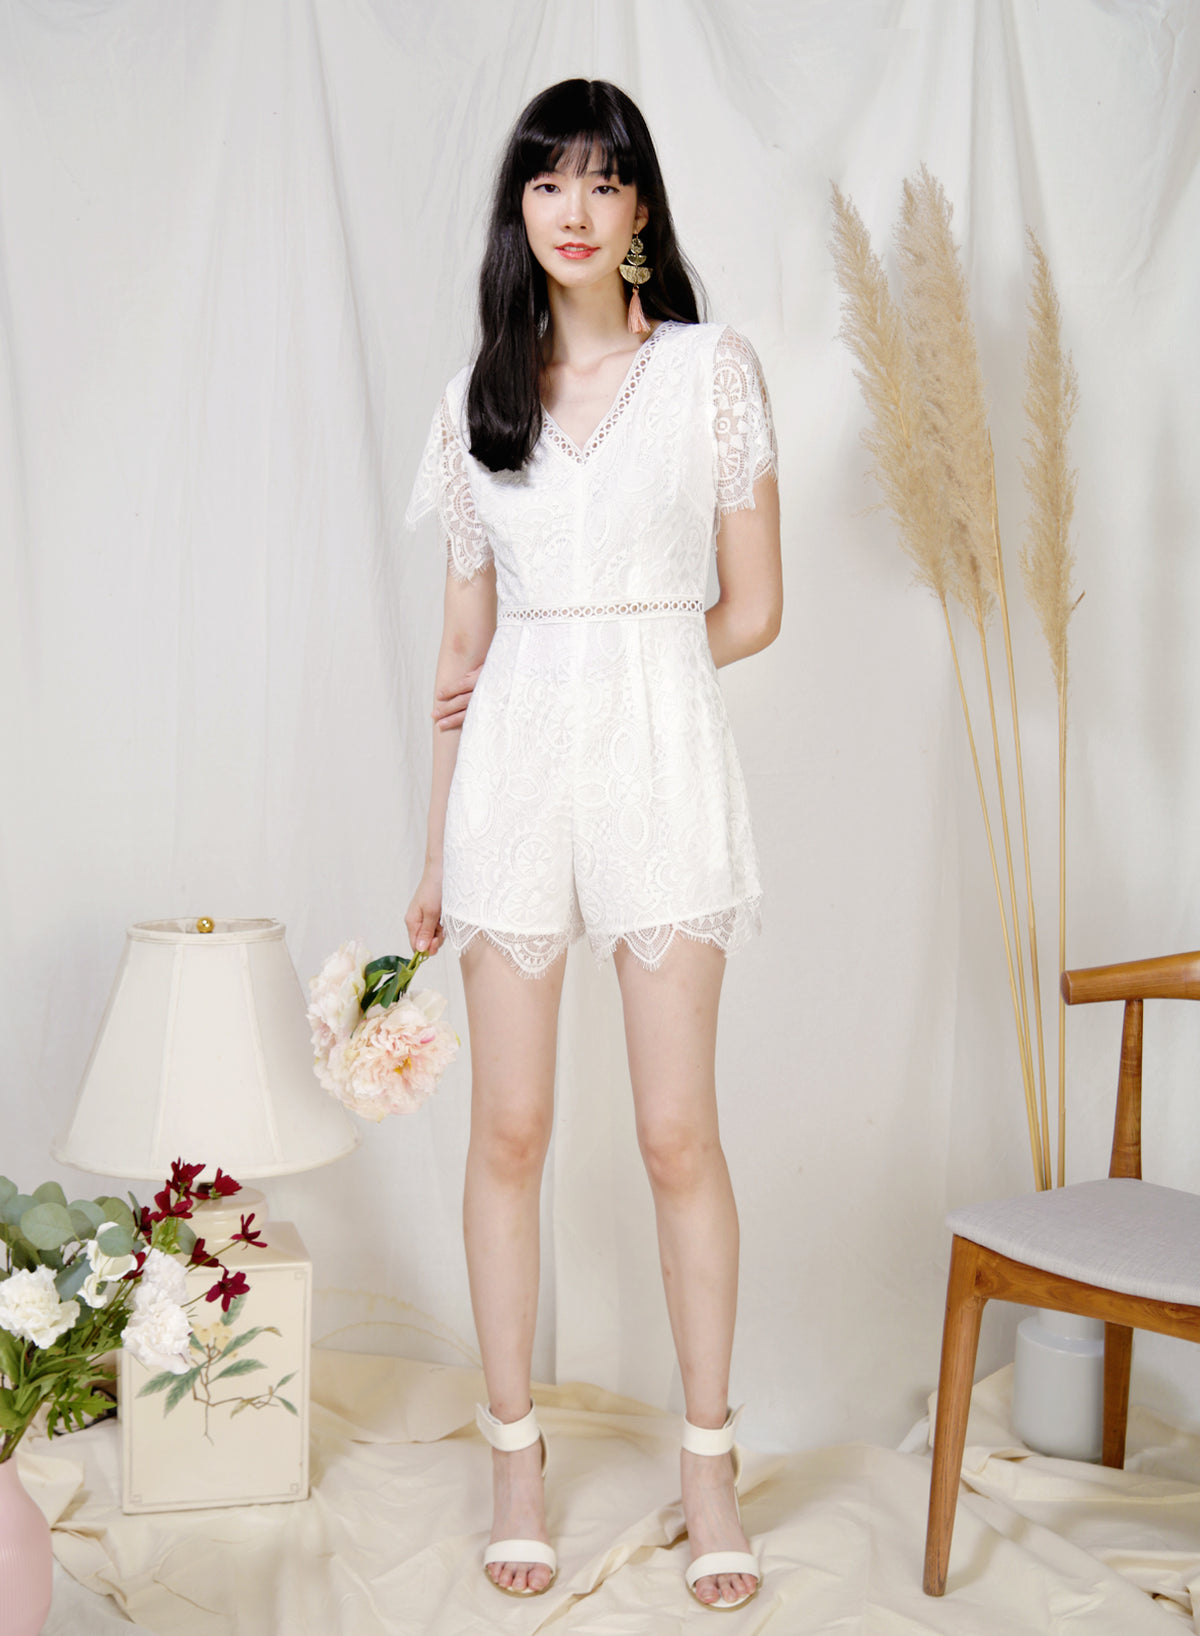 Mystic Eyelash Lace Hem Romper (White) at $ 44.50 only sold at And Well Dressed Online Fashion Store Singapore